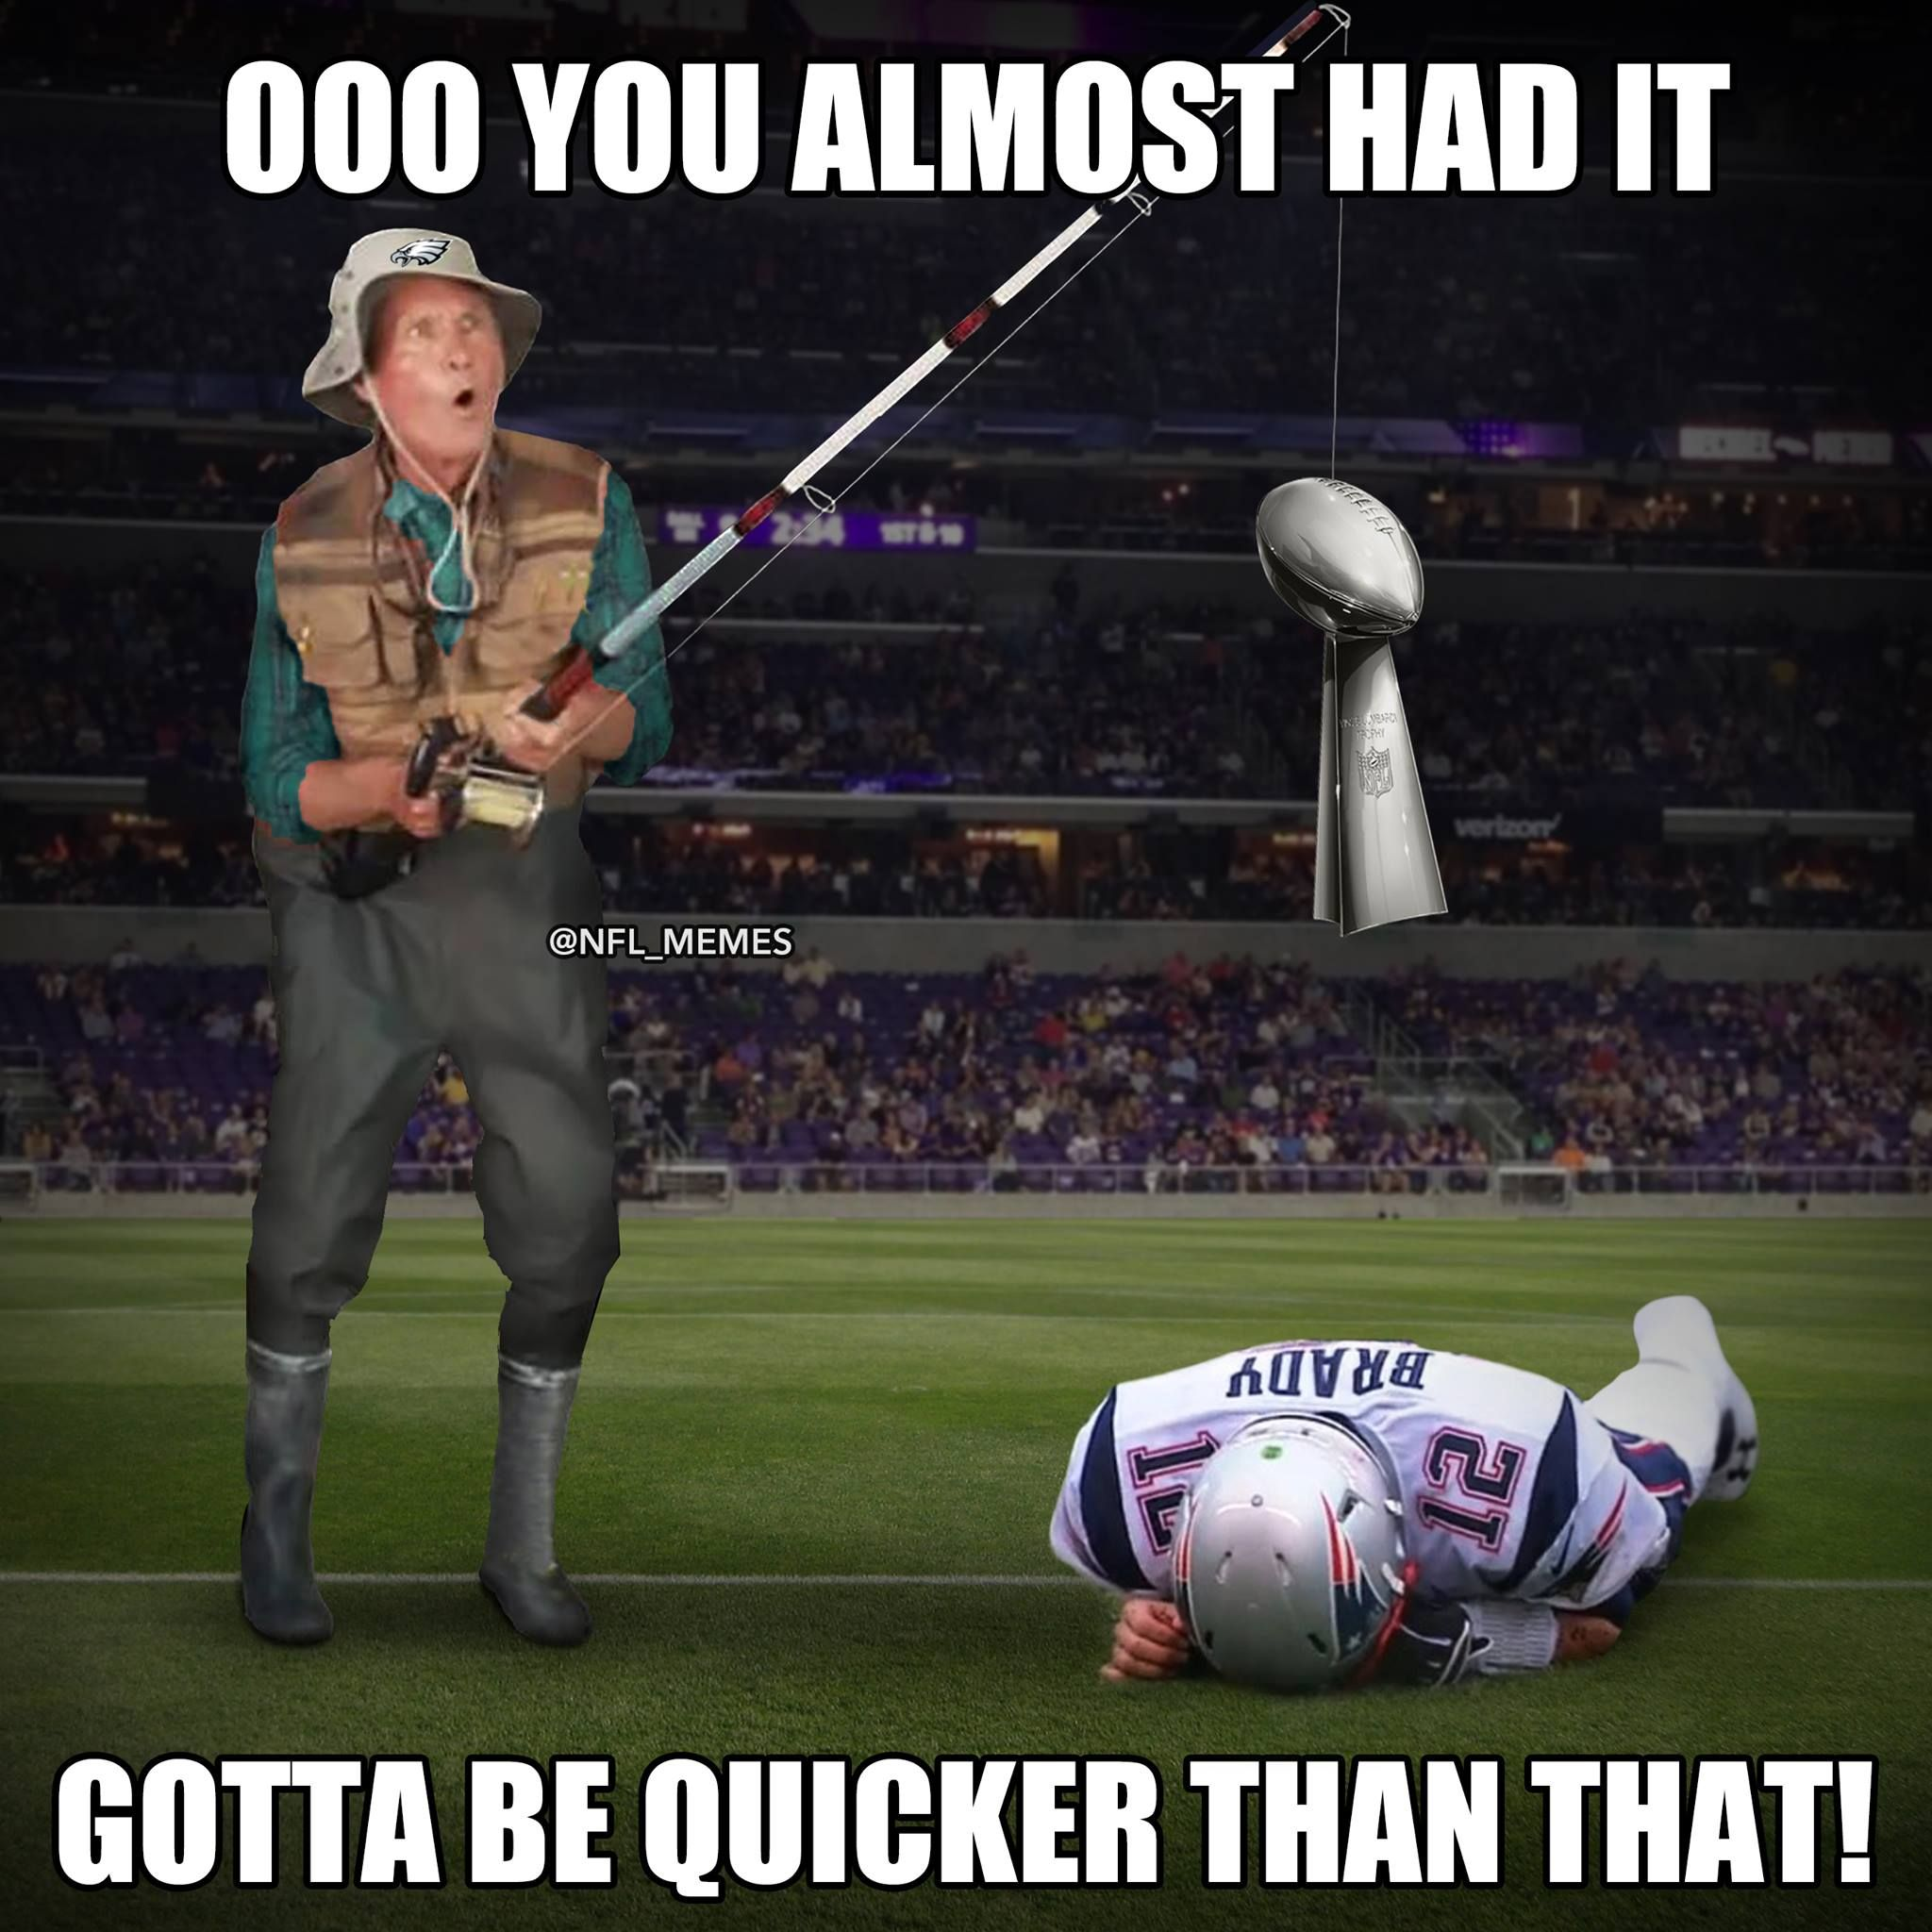 Soaring Above The Patriots Funny Meme Lol Humor Funnypics Dank Hilarious Like Tumblr Memesdaily H Funny Football Memes Nfl Funny Funny Sports Memes